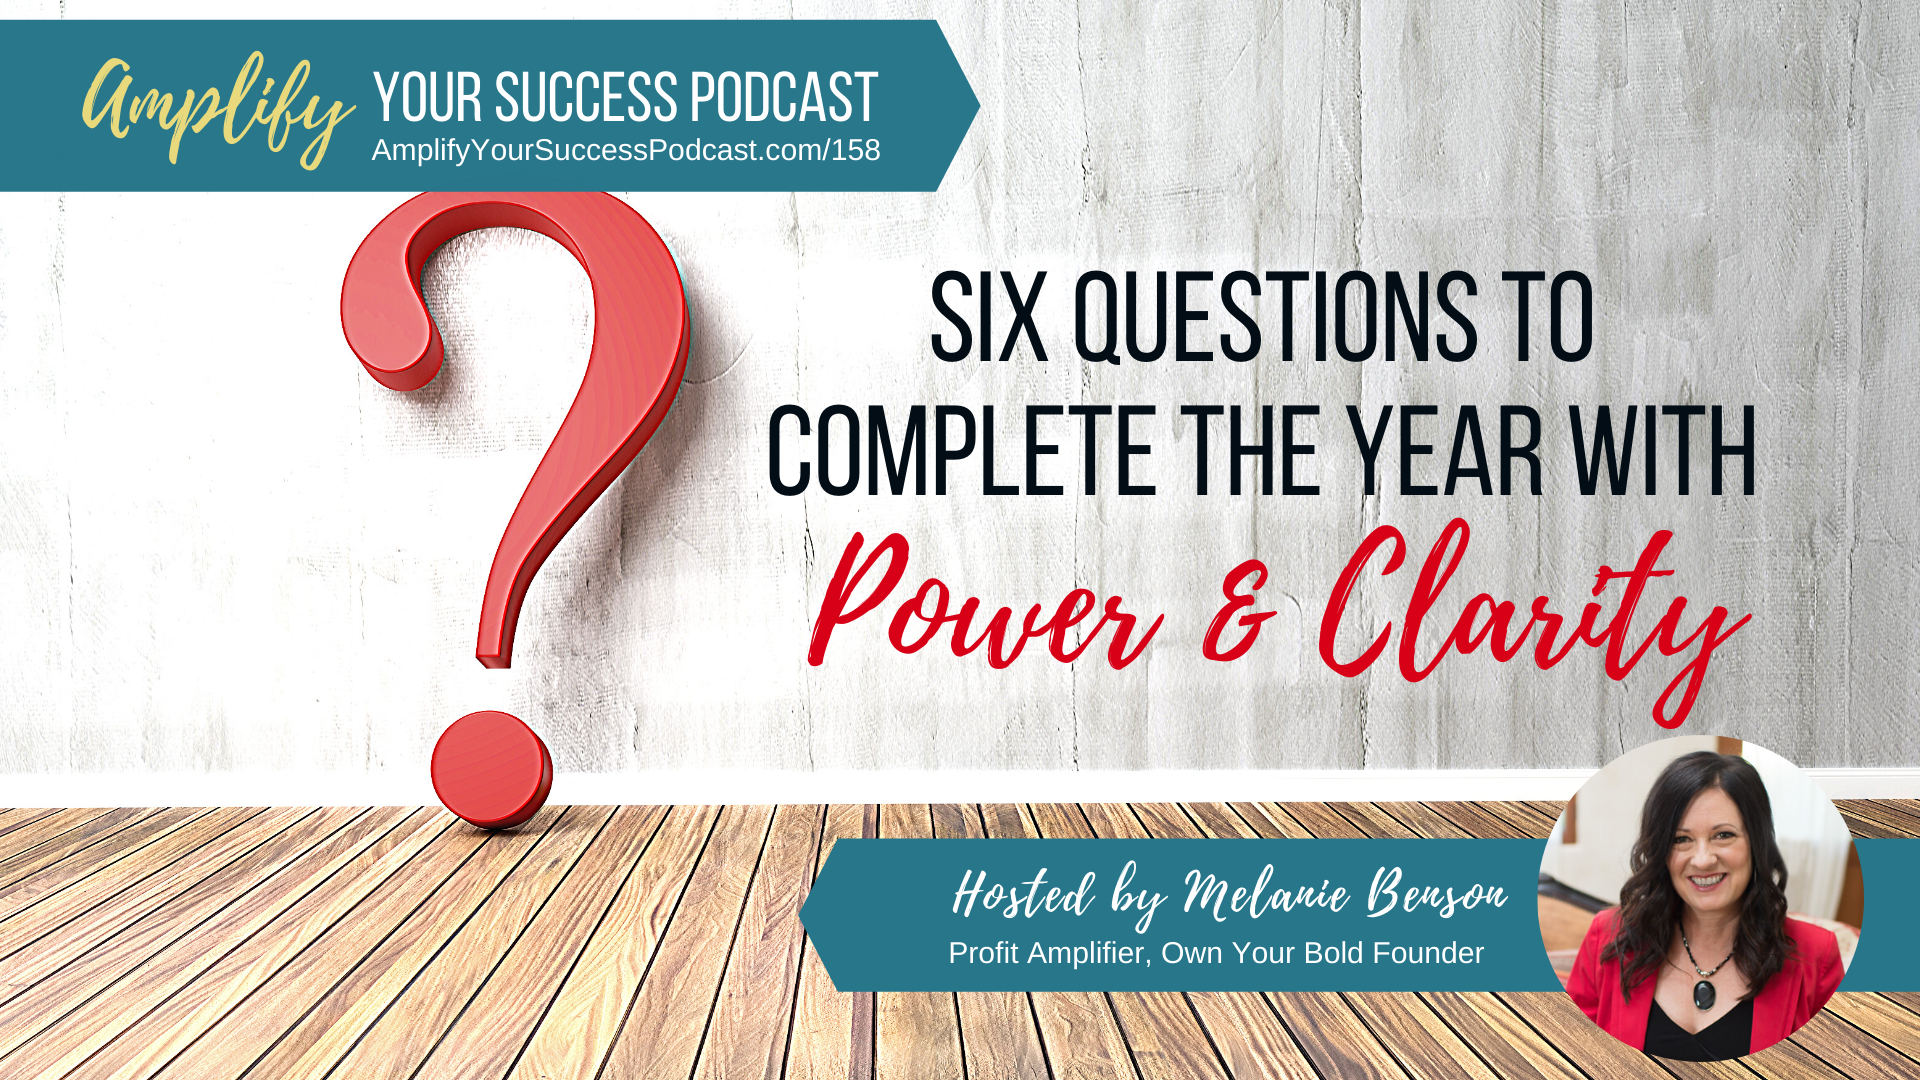 Six Questions to Complete the Year with Power & Clarity